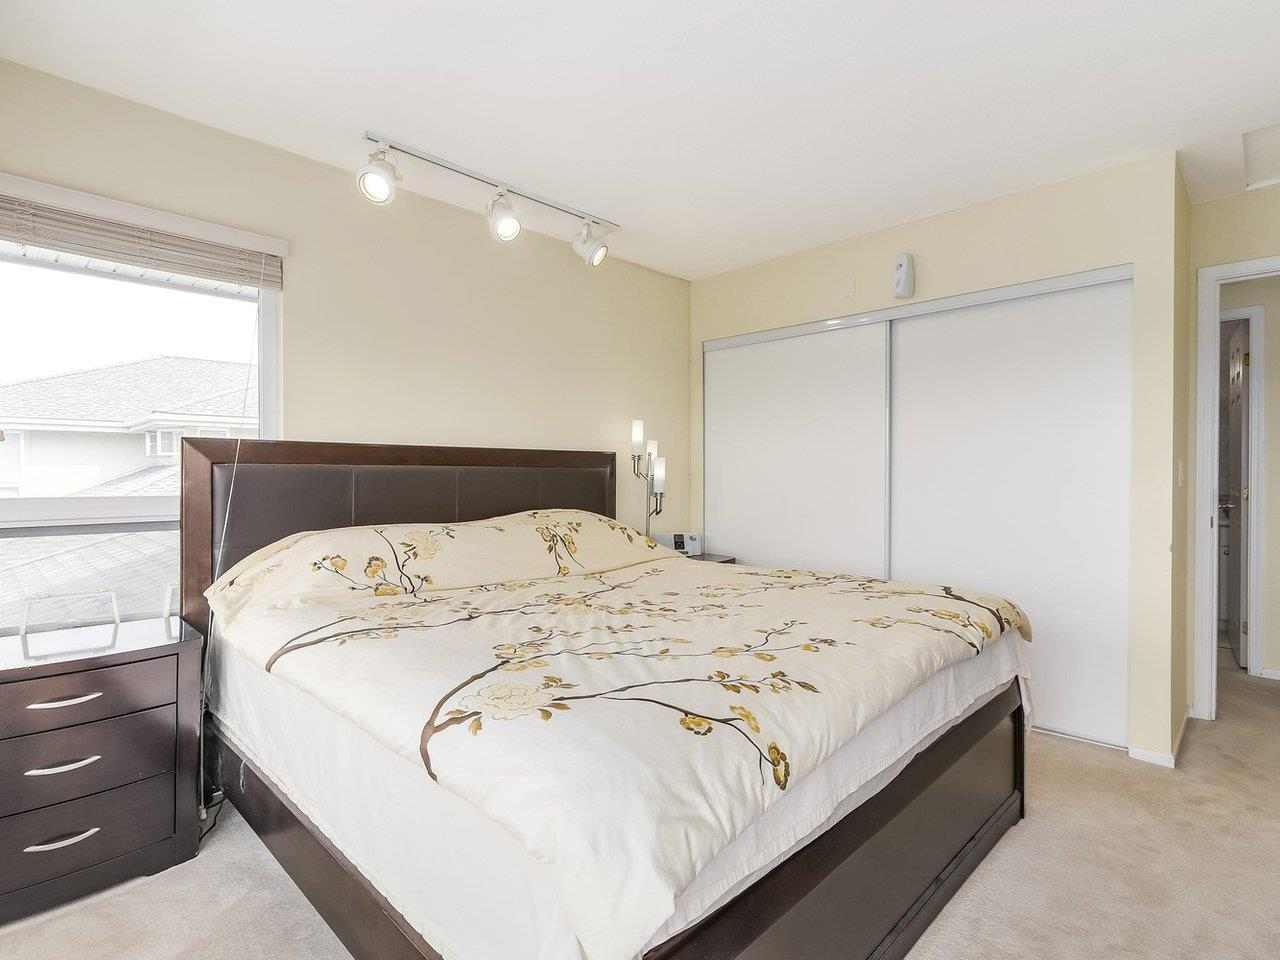 Condo Apartment at 405 2965 HORLEY STREET, Unit 405, Vancouver East, British Columbia. Image 11